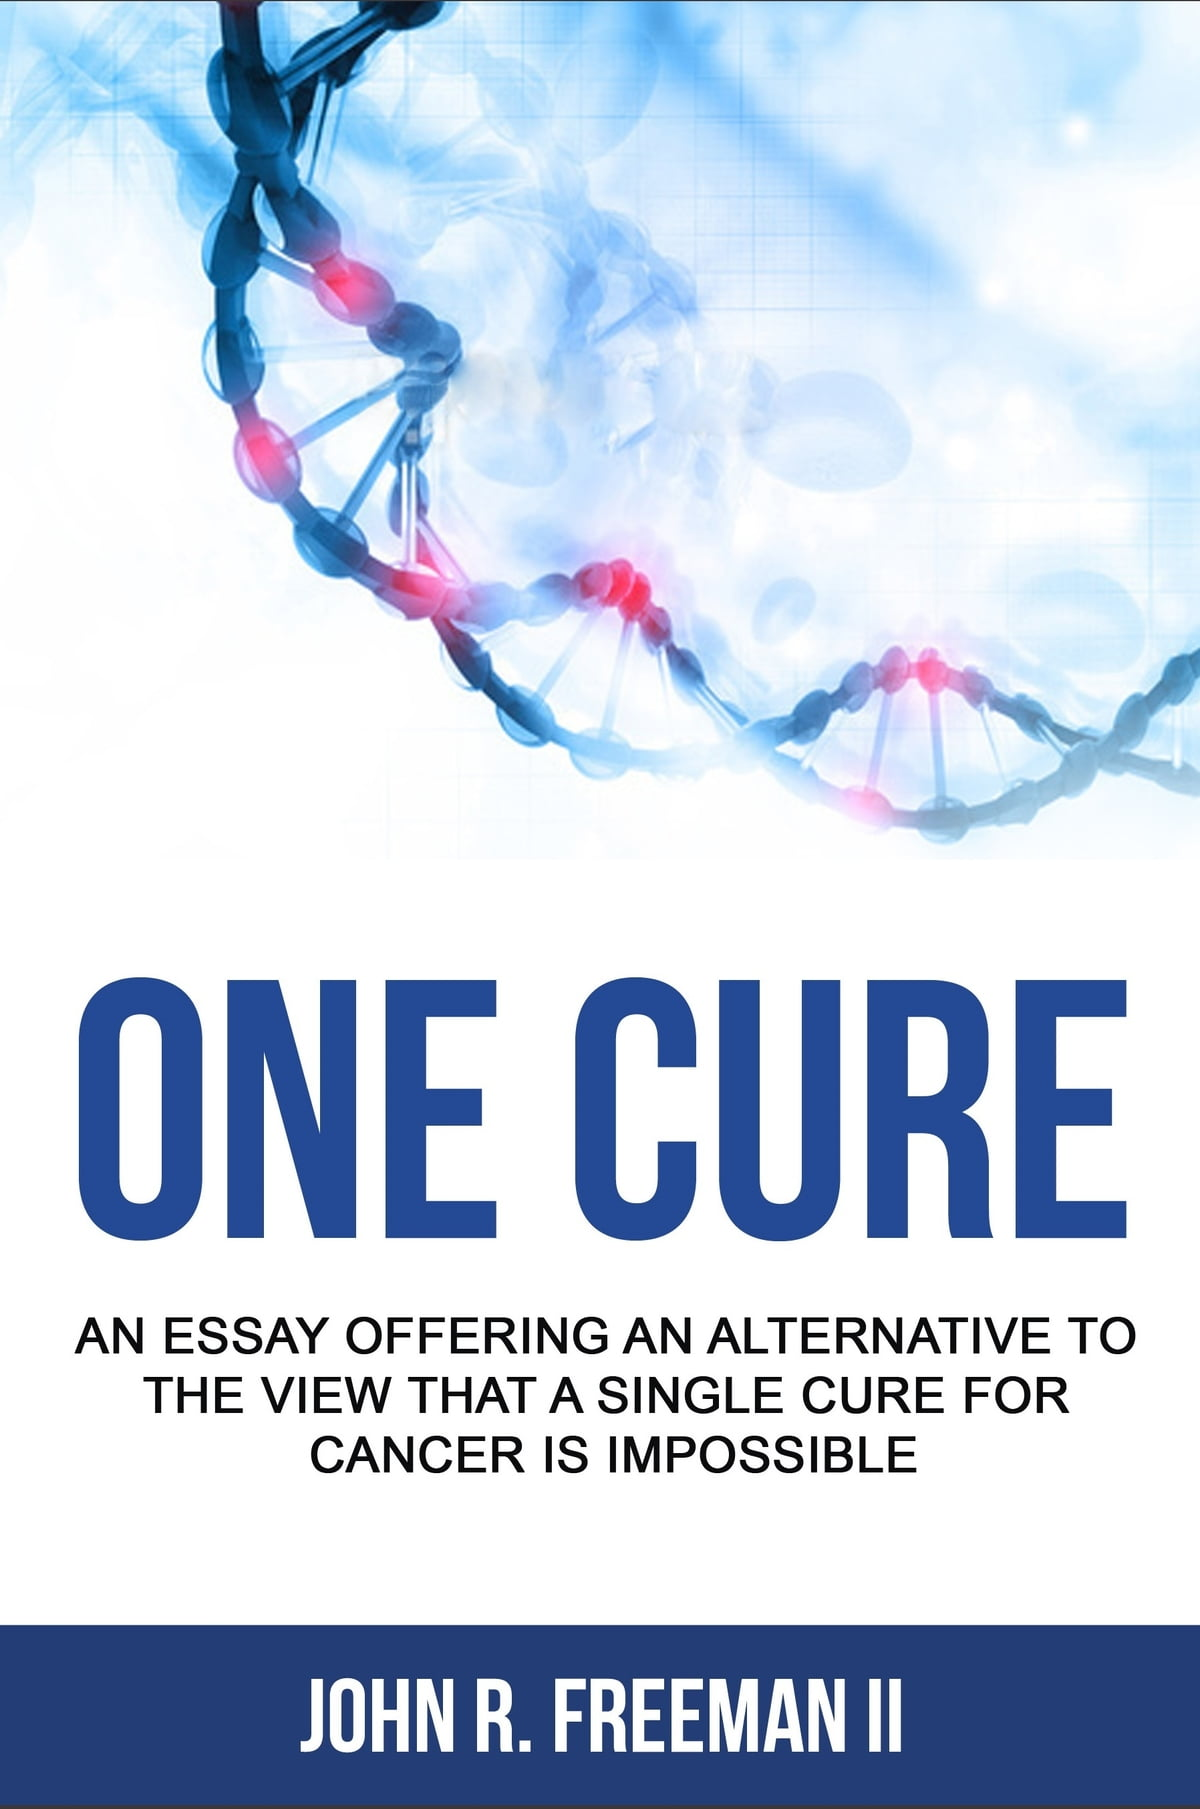 E Cure An Essay Arguing Against The Idea That A Single Cure For Cancer Is Impossible Ebook By John R Freeman II Rakuten Kobo